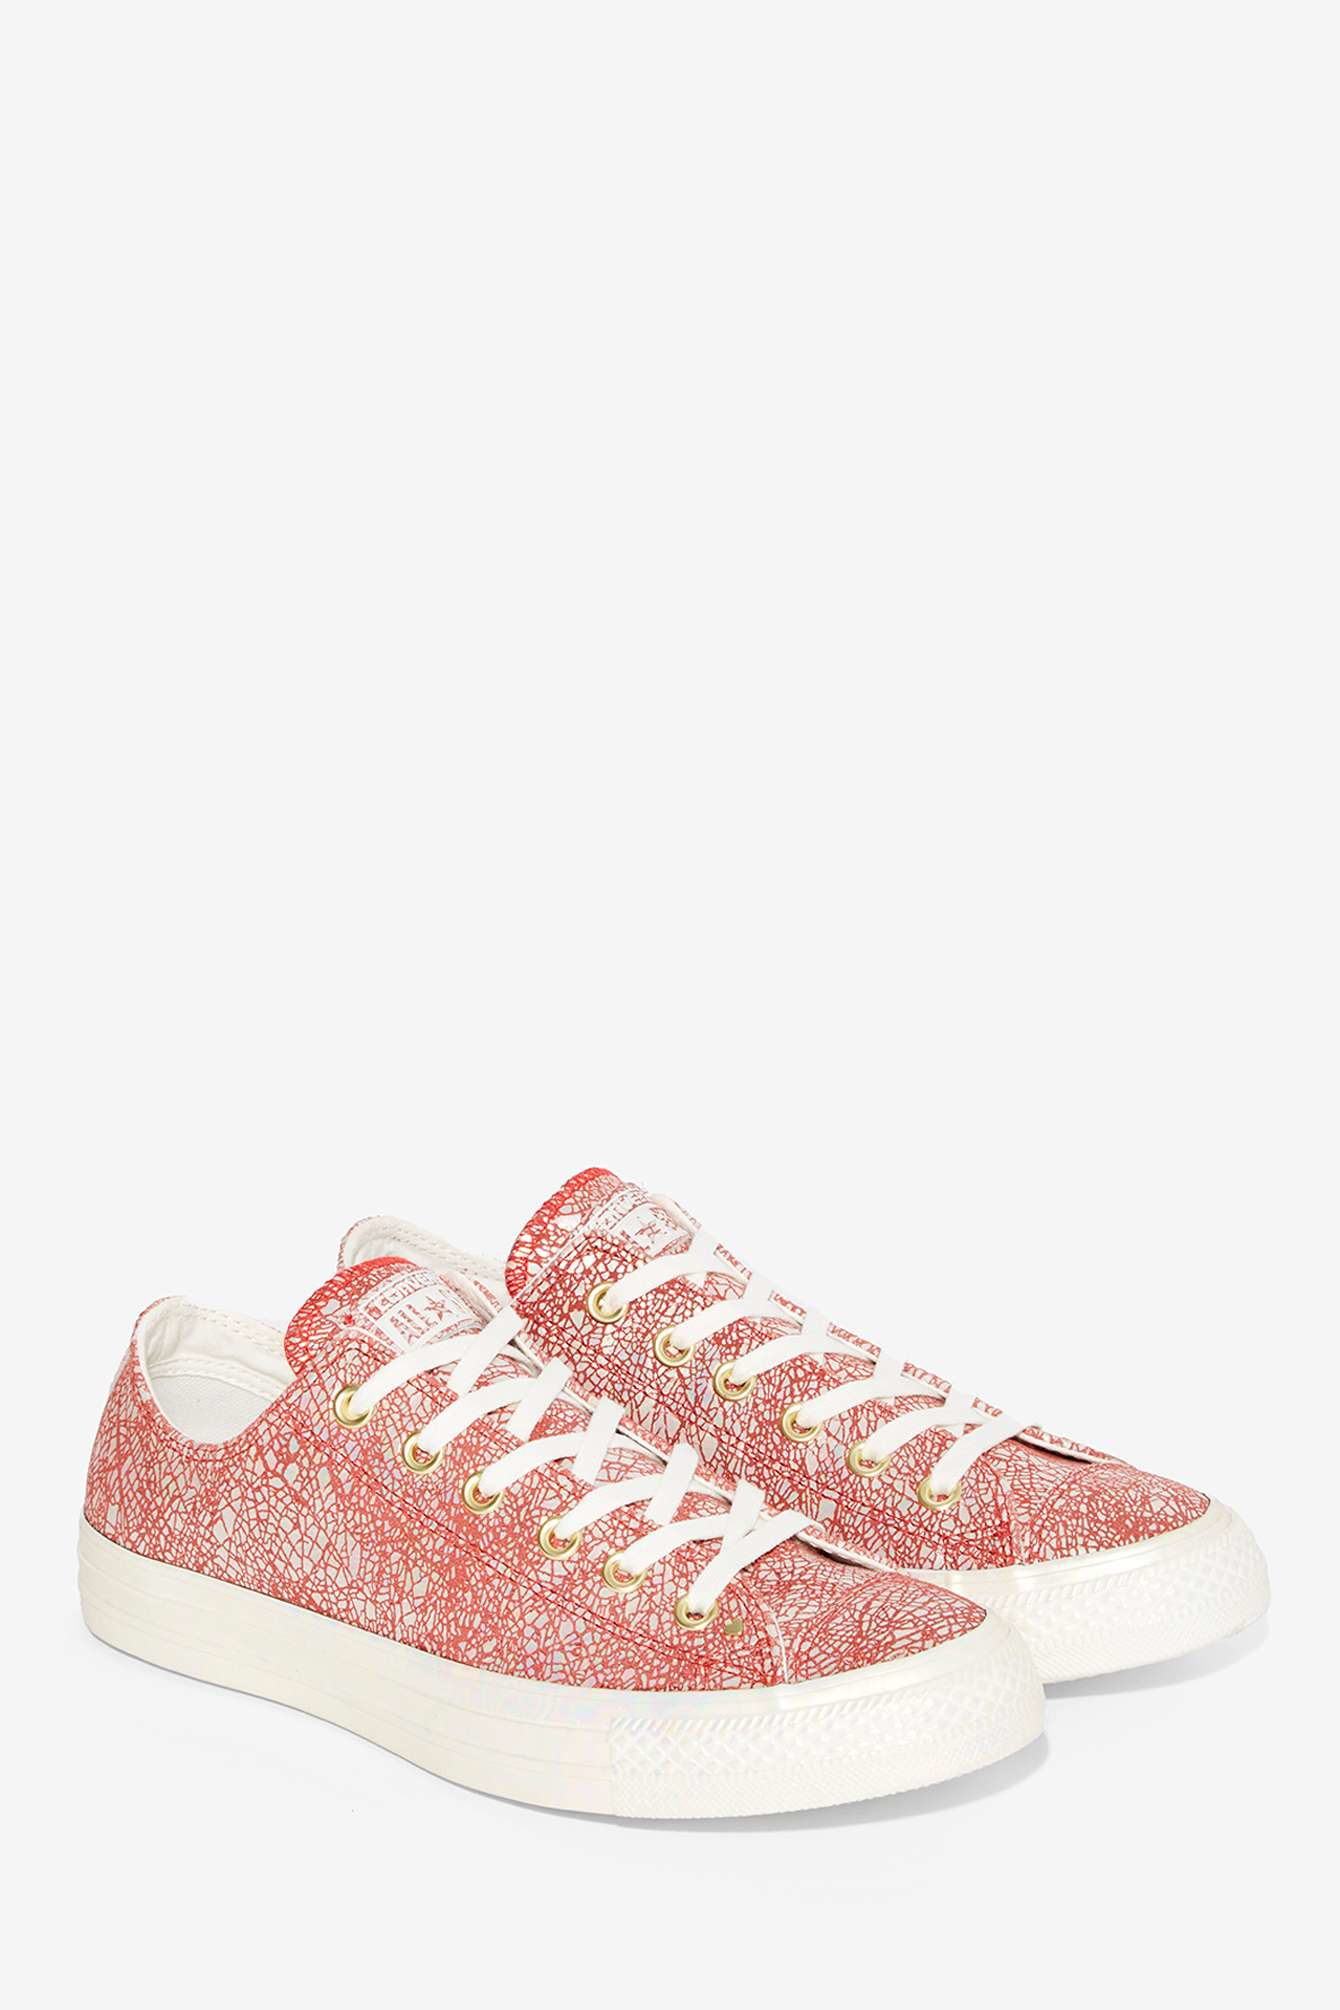 479175c986c2 Lyst - Converse Chuck Taylor All Star Irisdescent Leather Sneaker in Red